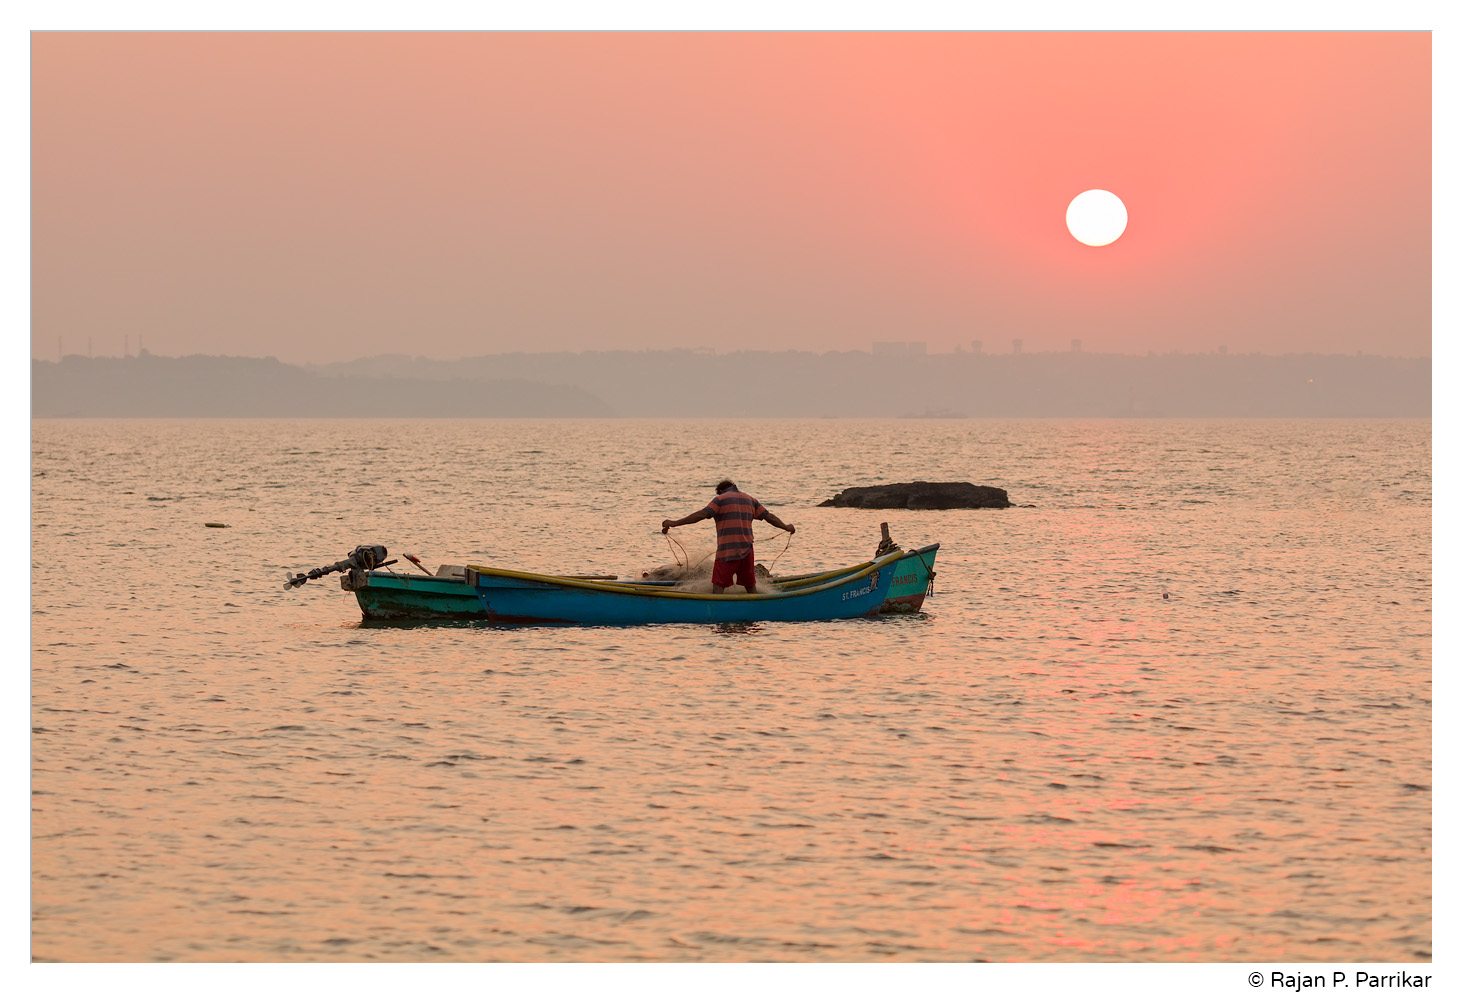 Lone fisherman and last sunset of 2018, Siridona, Goa